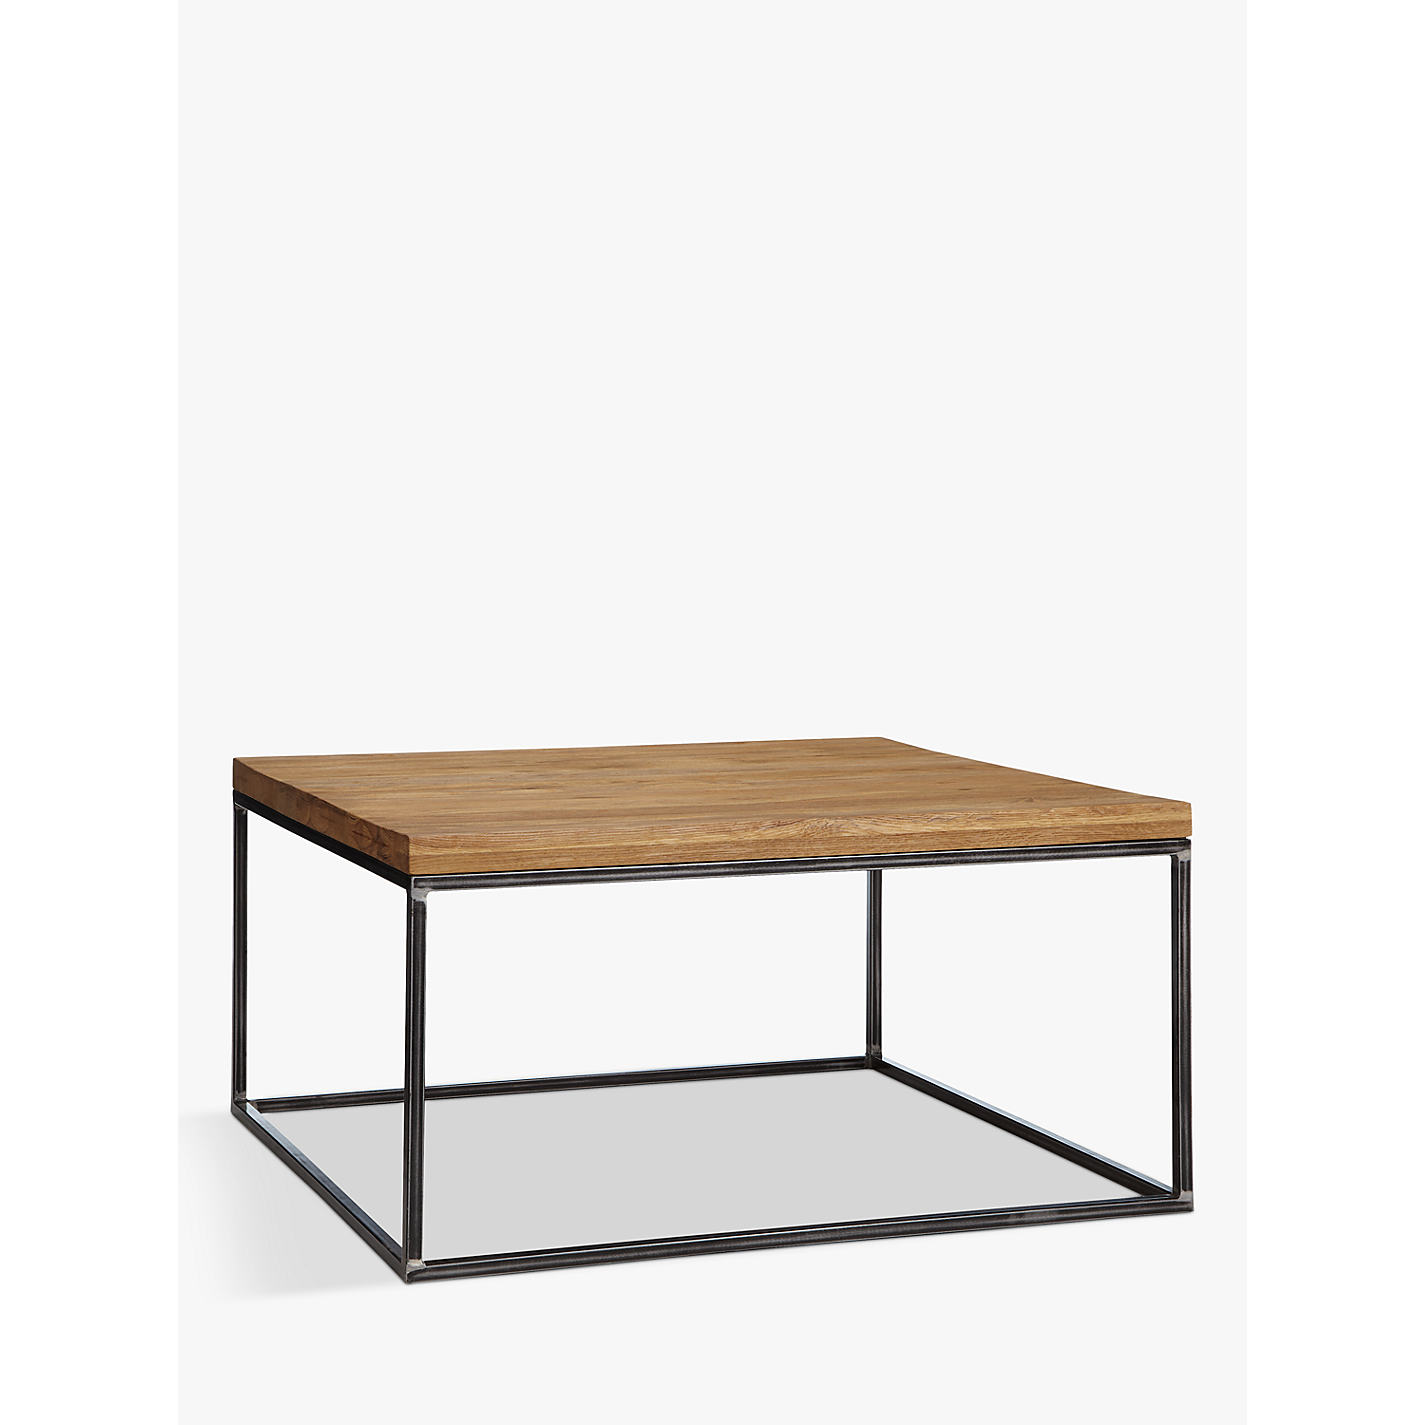 Coffee tables for sale uk the coffee table Coffee tables uk